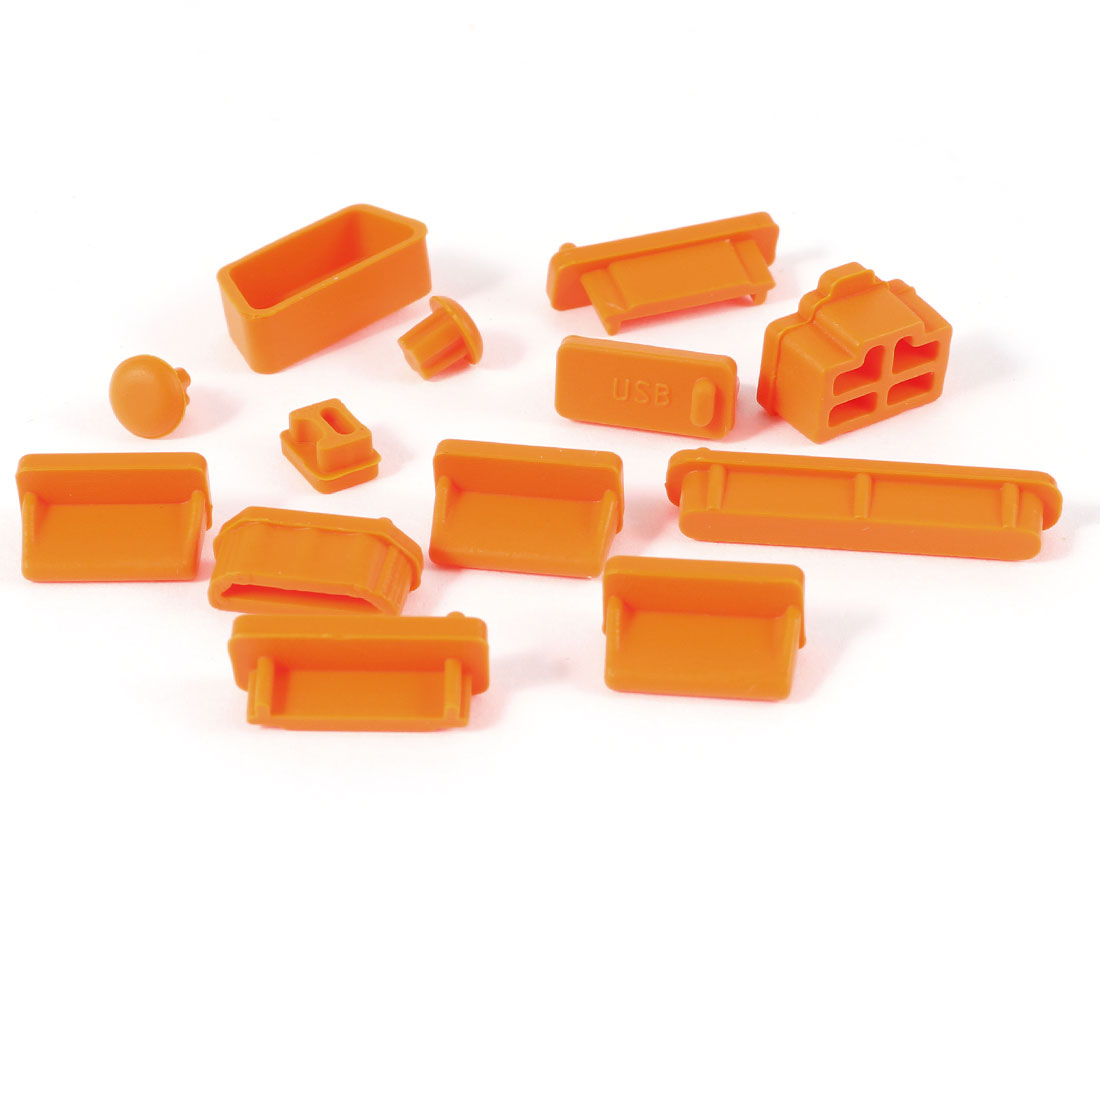 12pcs Silicone Ports Protector Cover Anti-Dust Plug Stopper Orange for Laptop